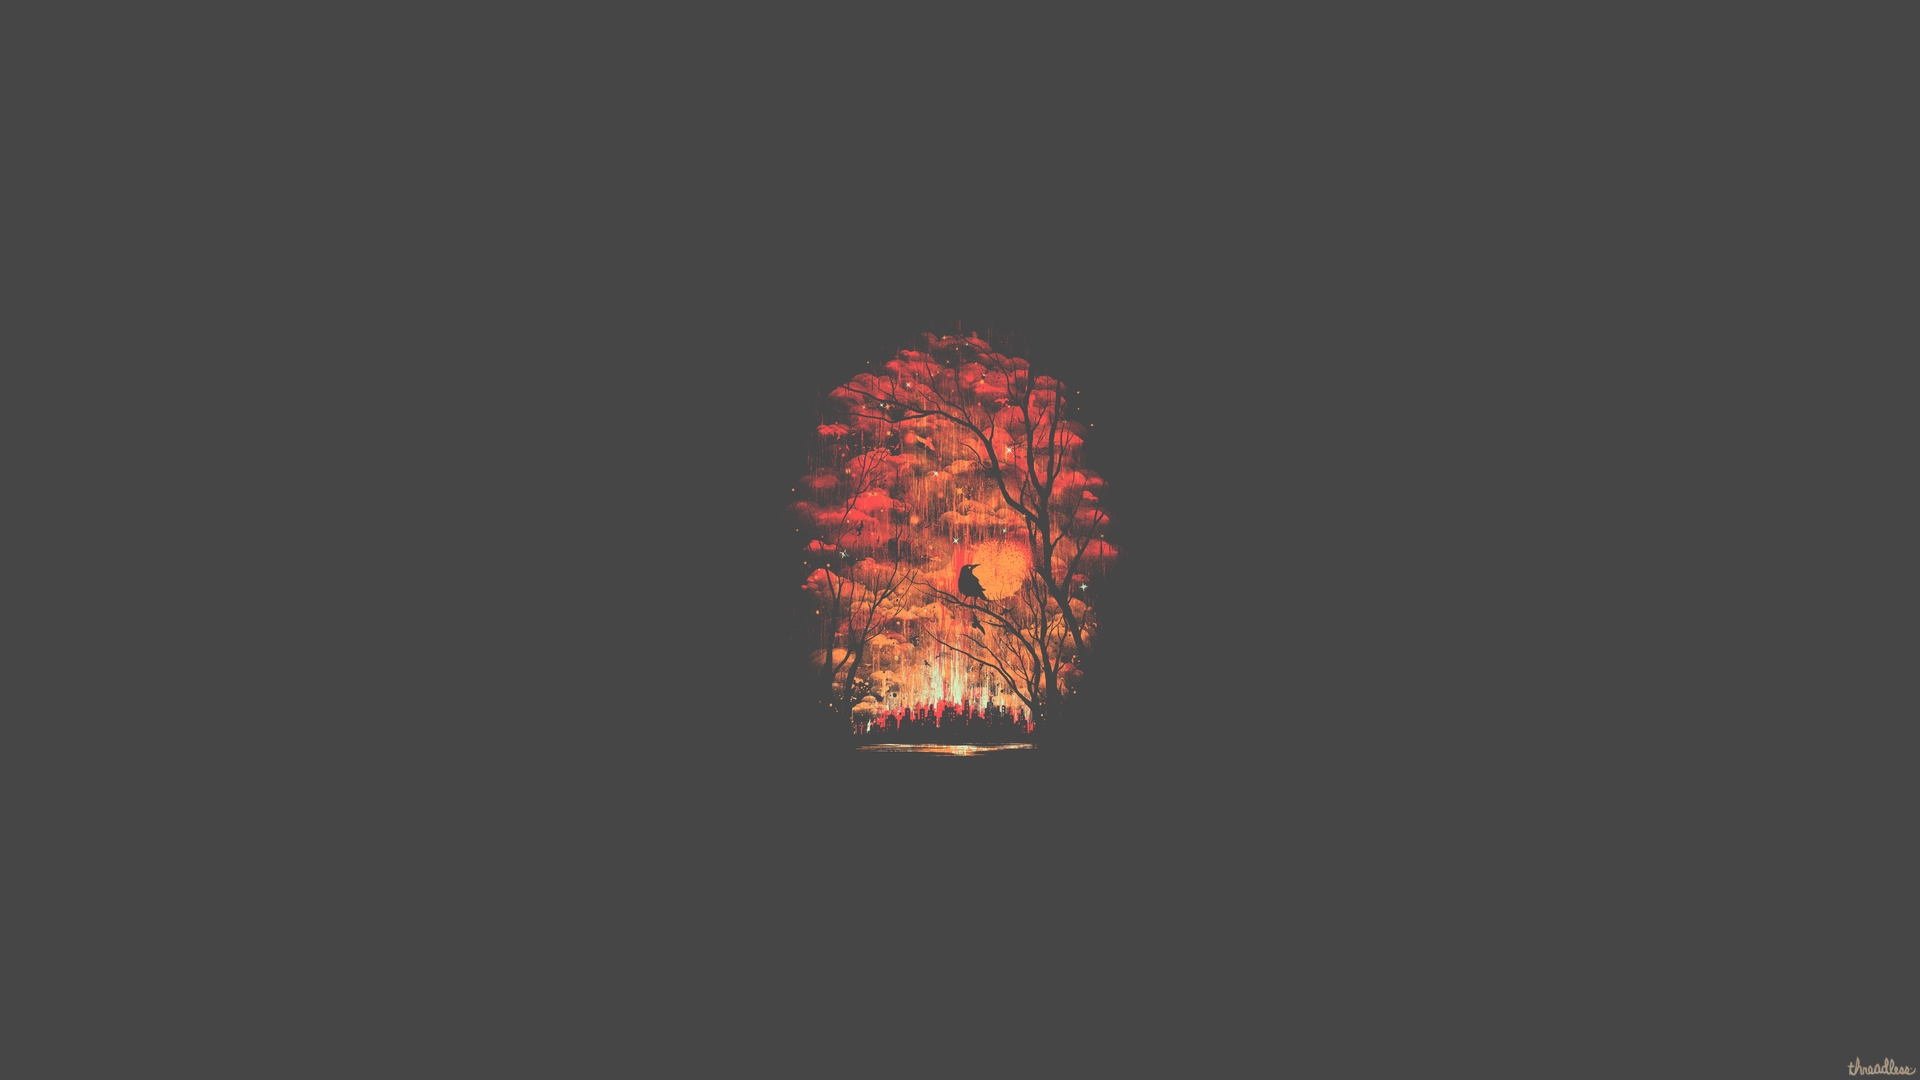 Forest Minimalist, HD Artist, 4k Wallpapers, Images ...